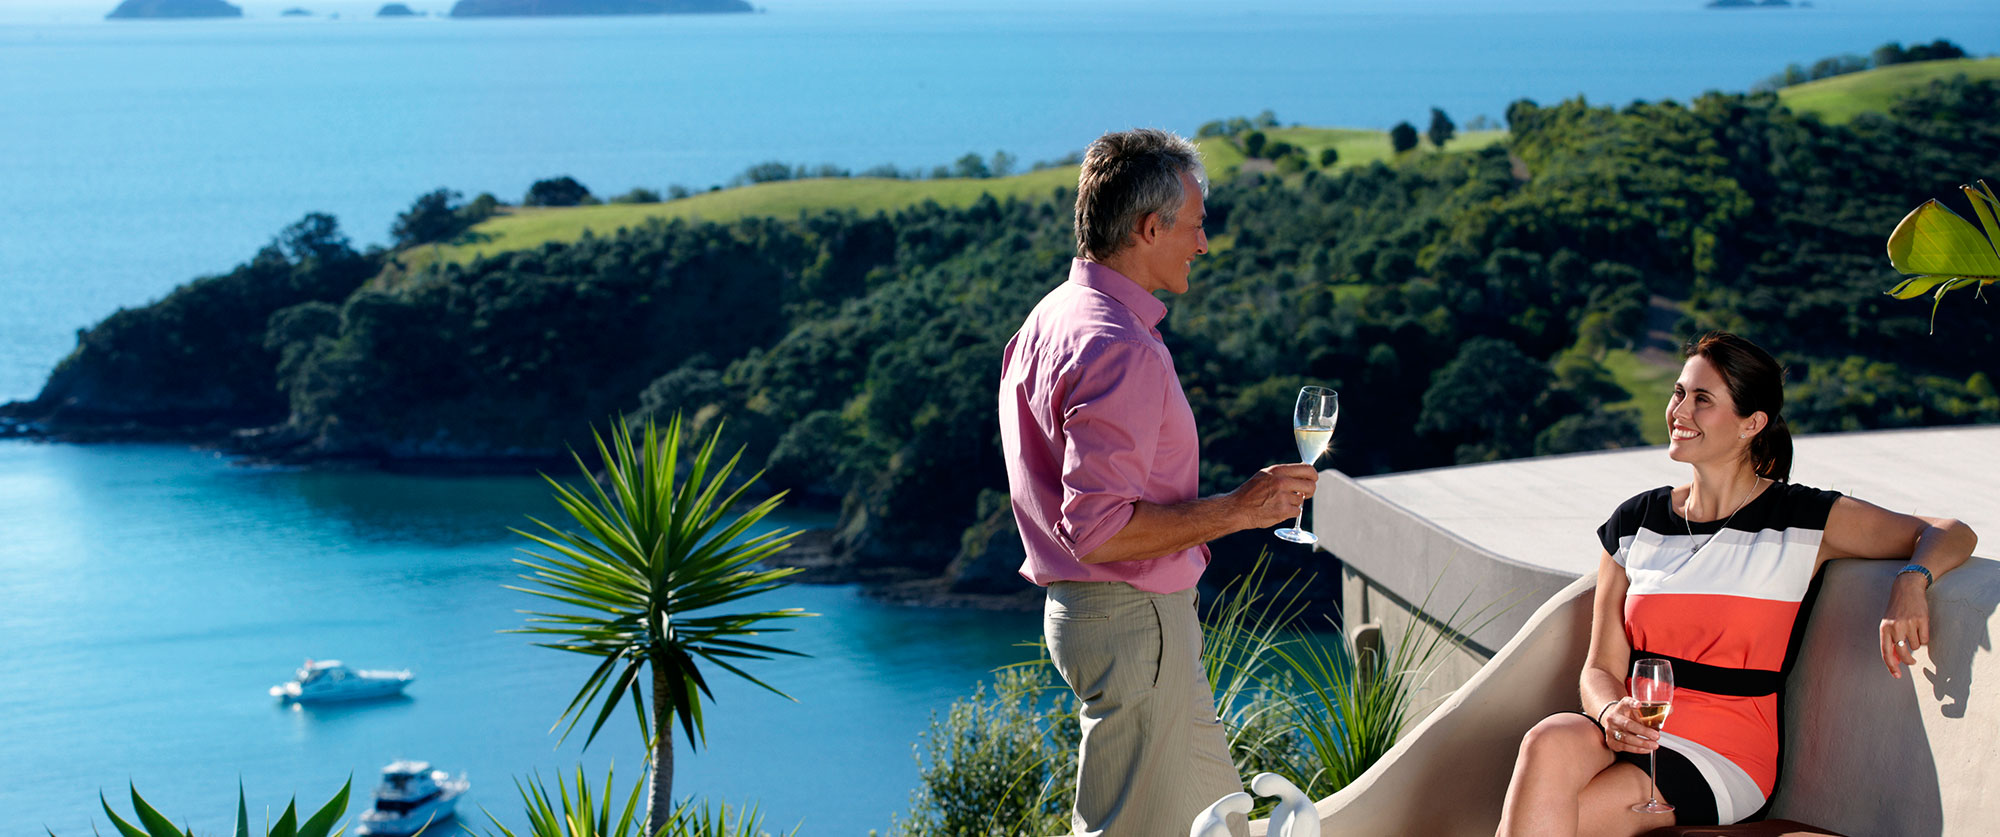 New Zealand Honeymoon Package: Feast of the Senses